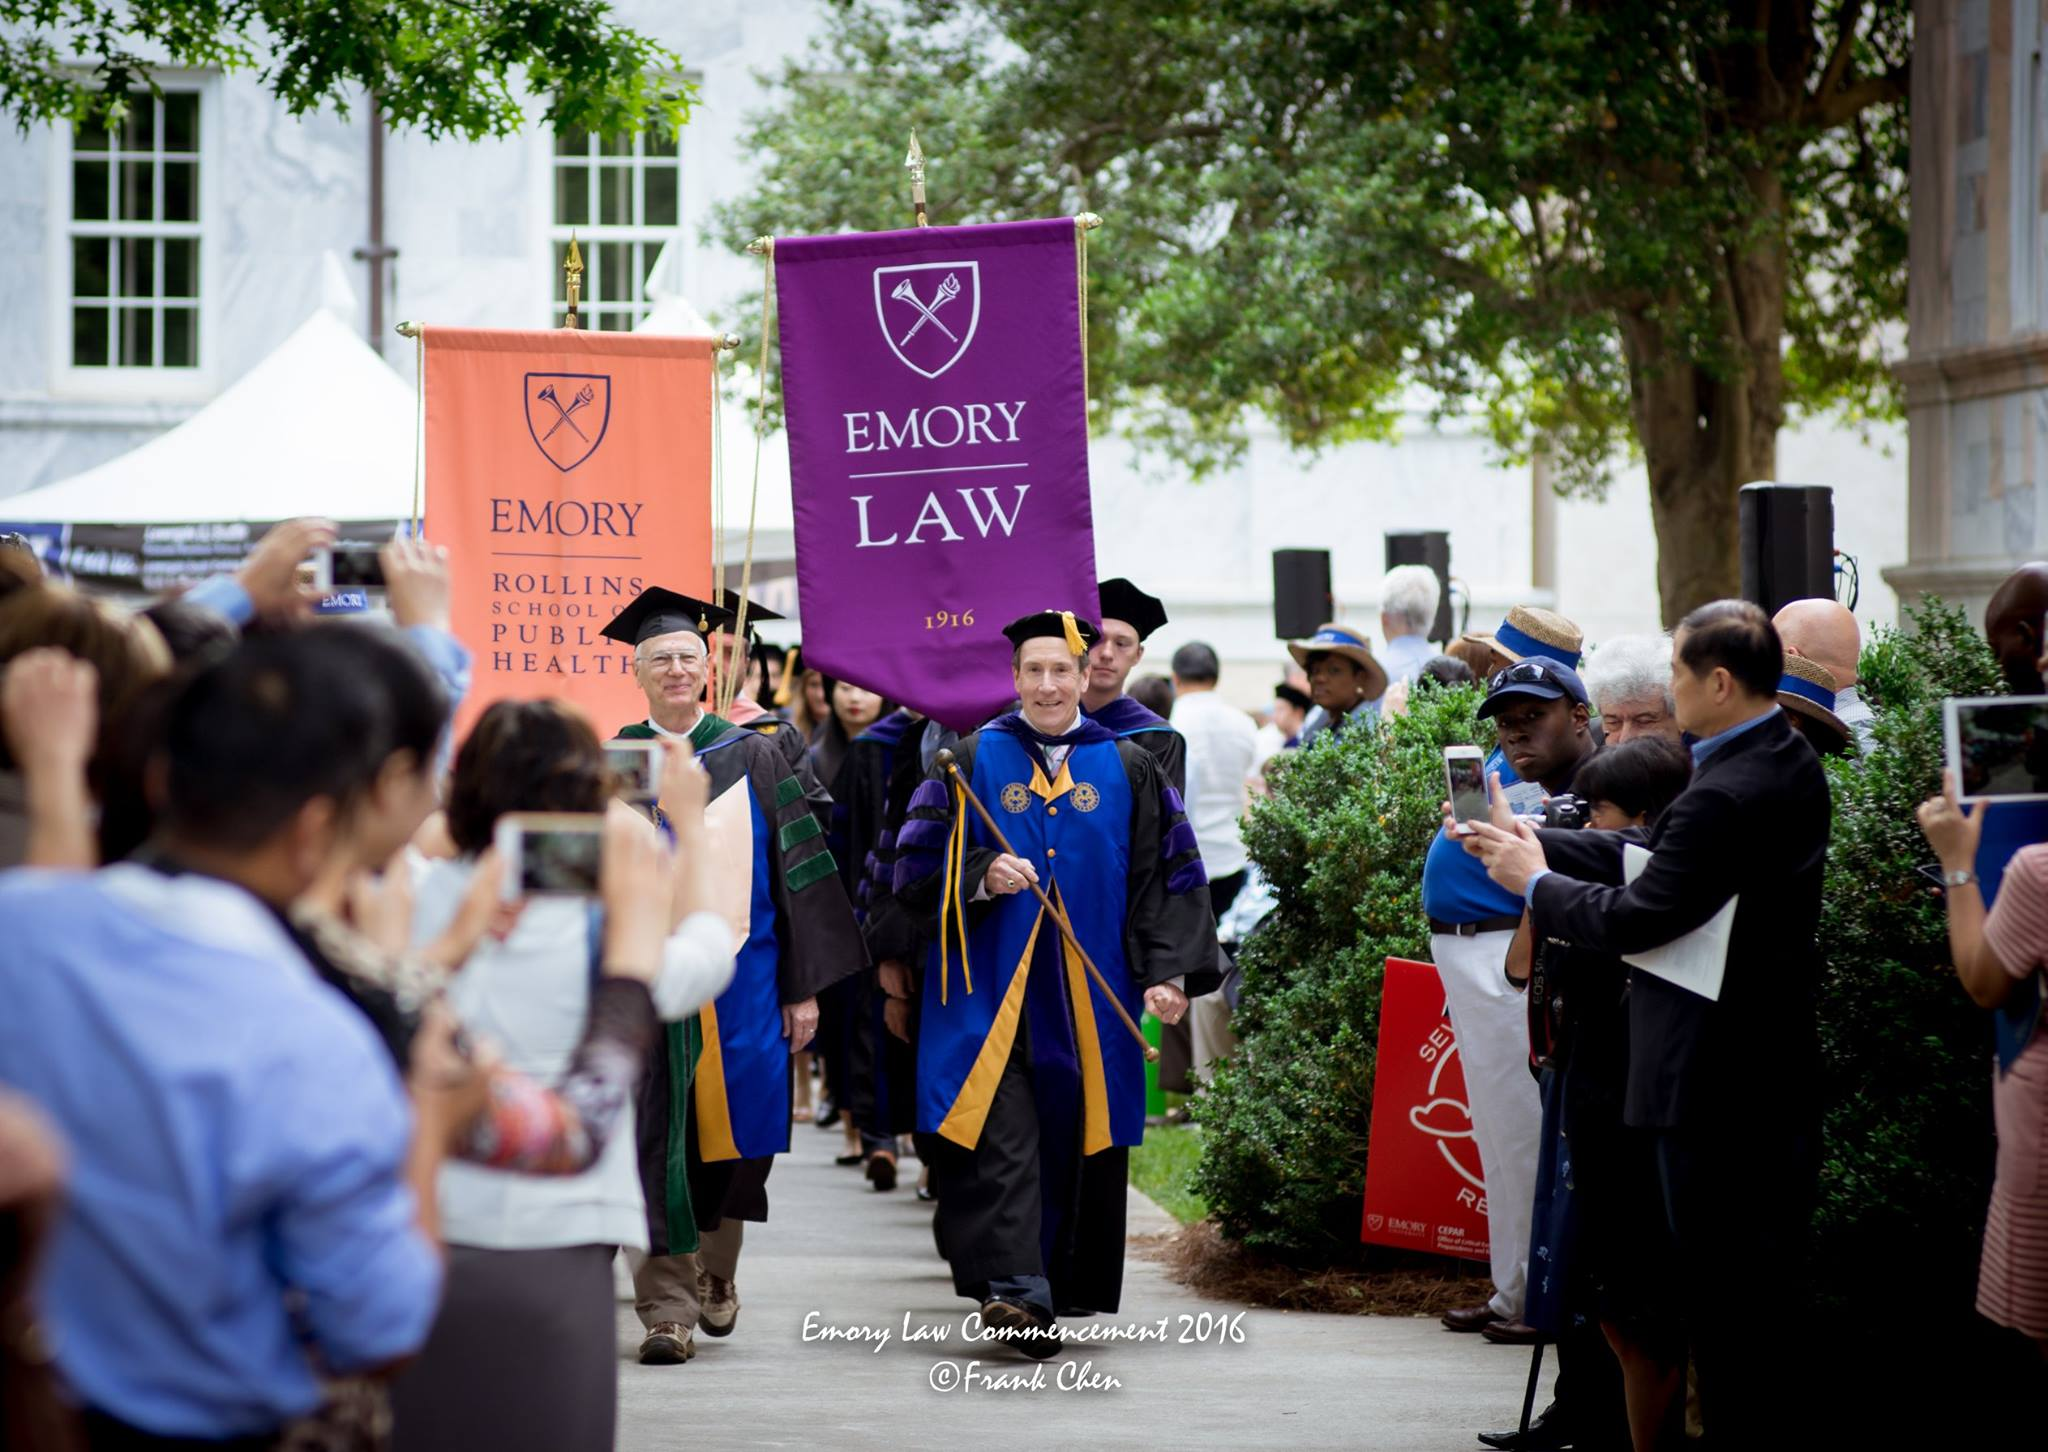 Emory Law Commencement 2016 led by Professor Richard Freer, by Frank Chen.